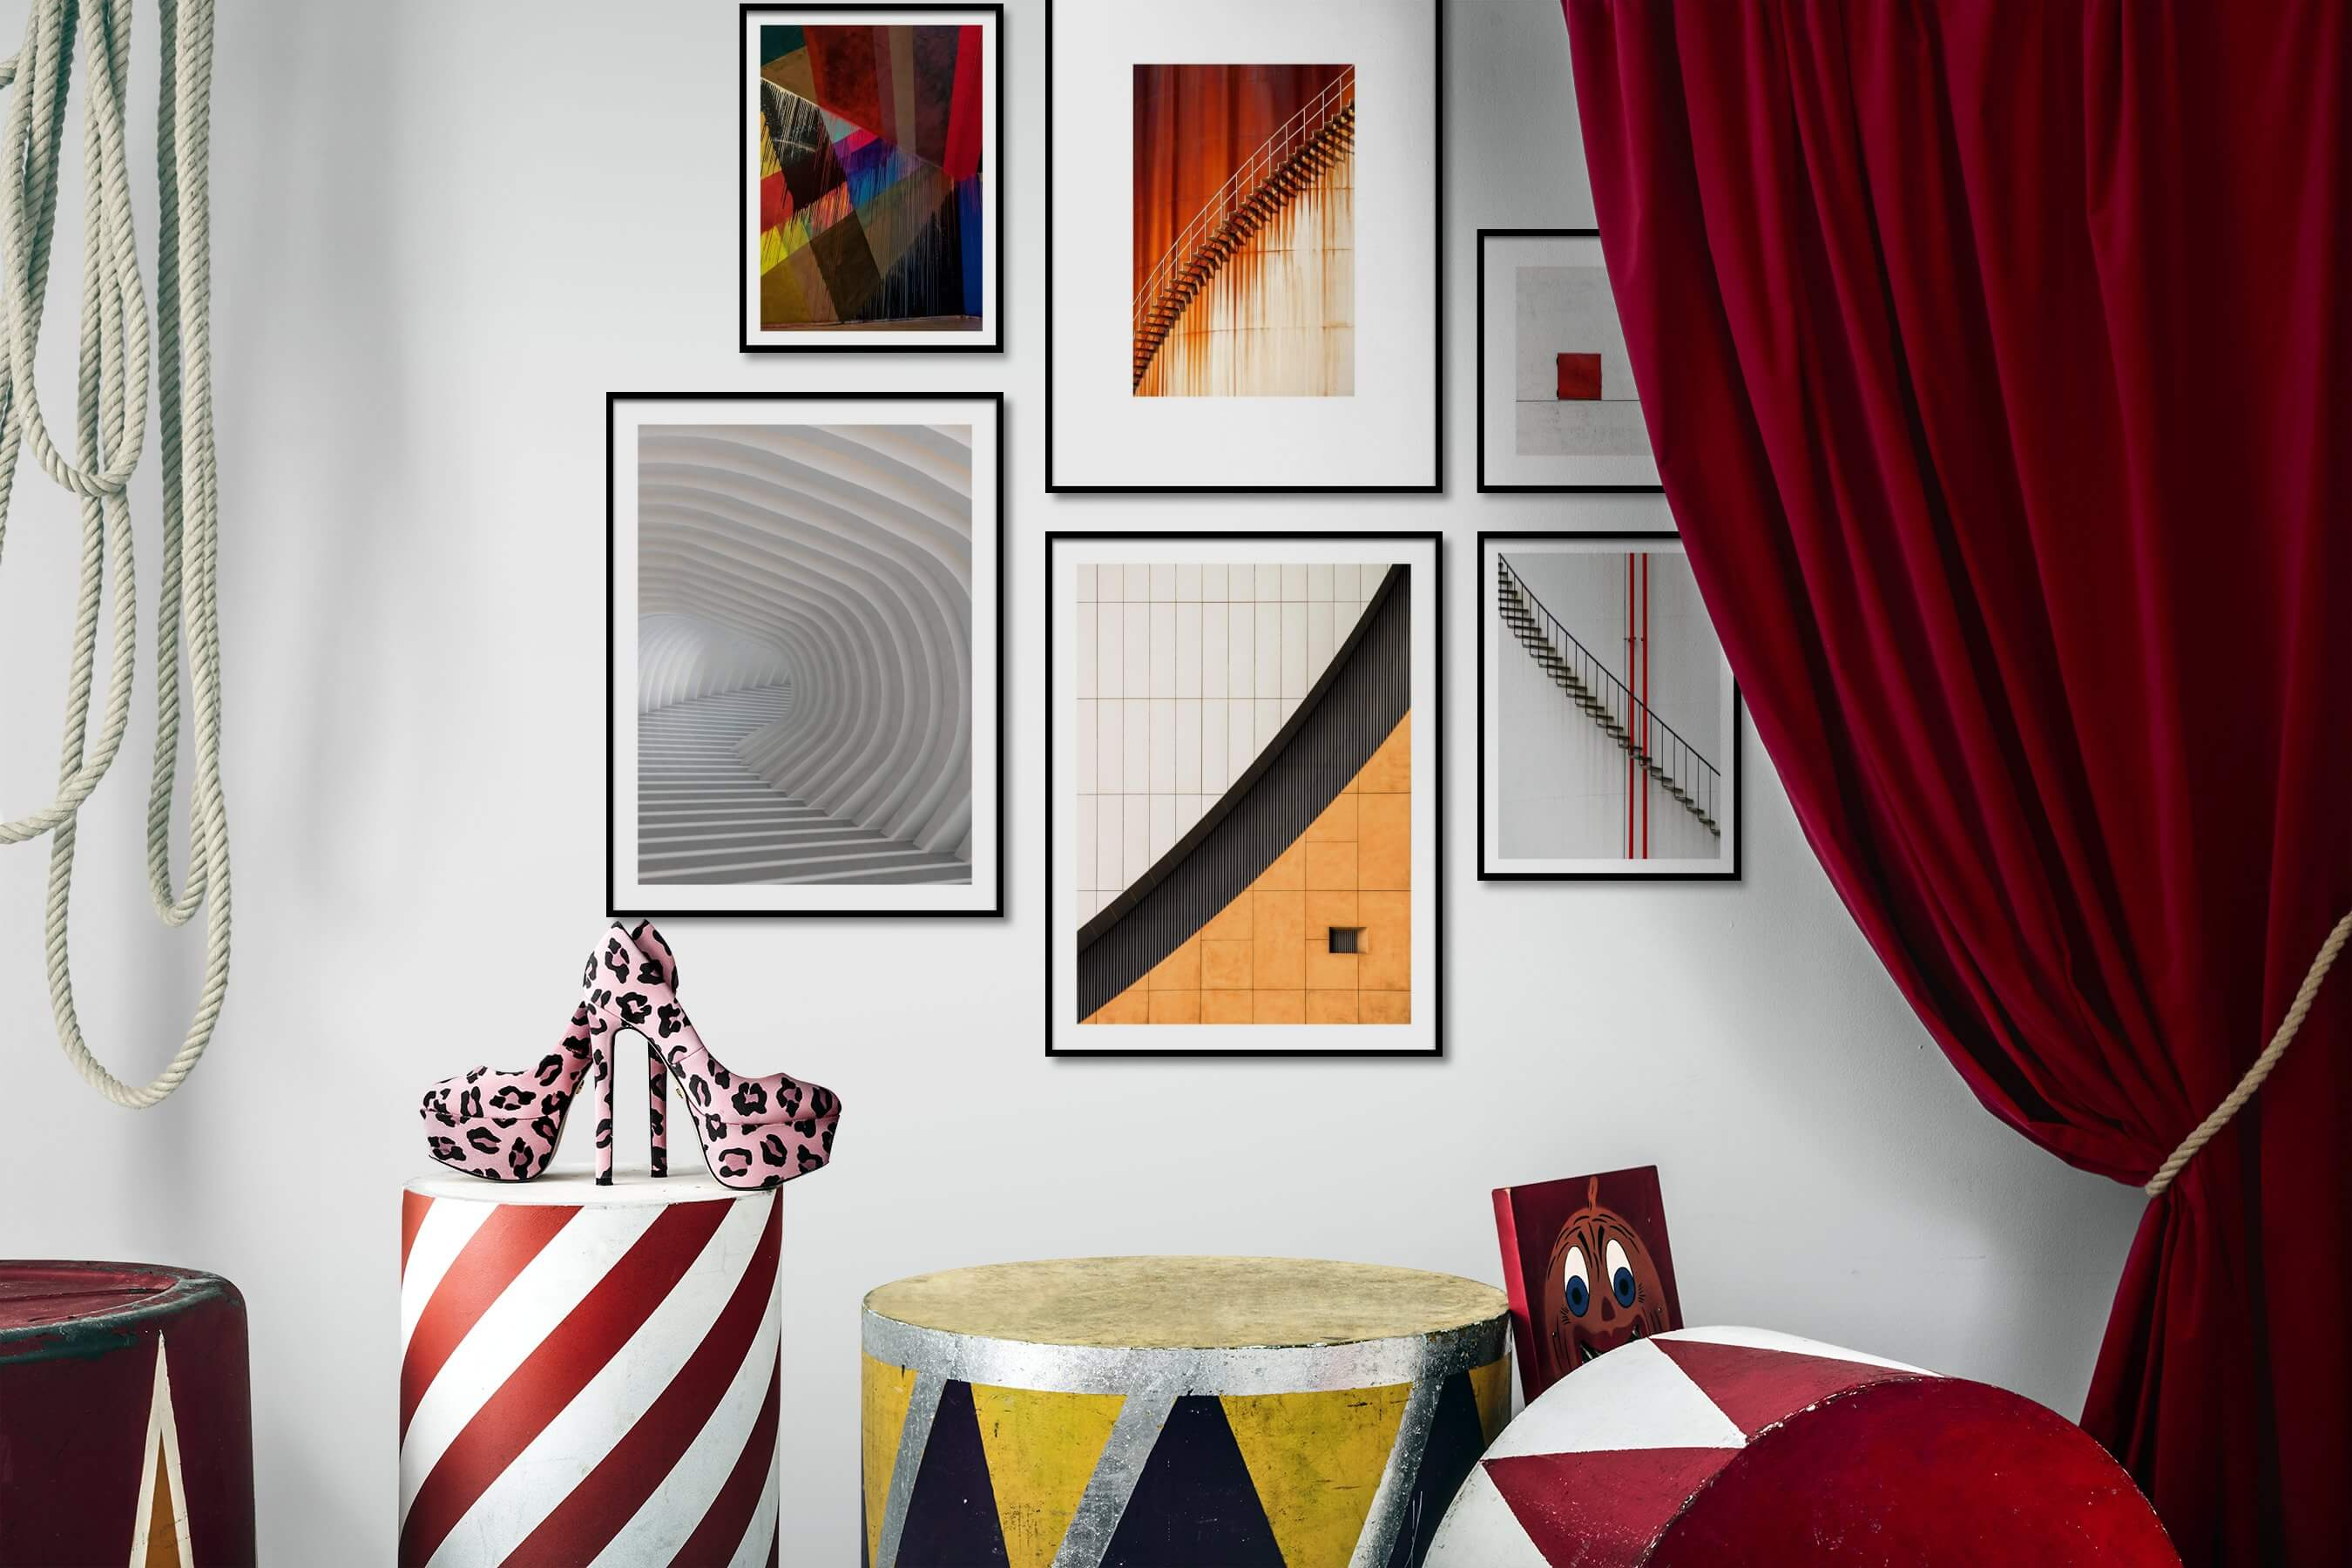 Gallery wall idea with six framed pictures arranged on a wall depicting For the Maximalist, For the Minimalist, and For the Moderate